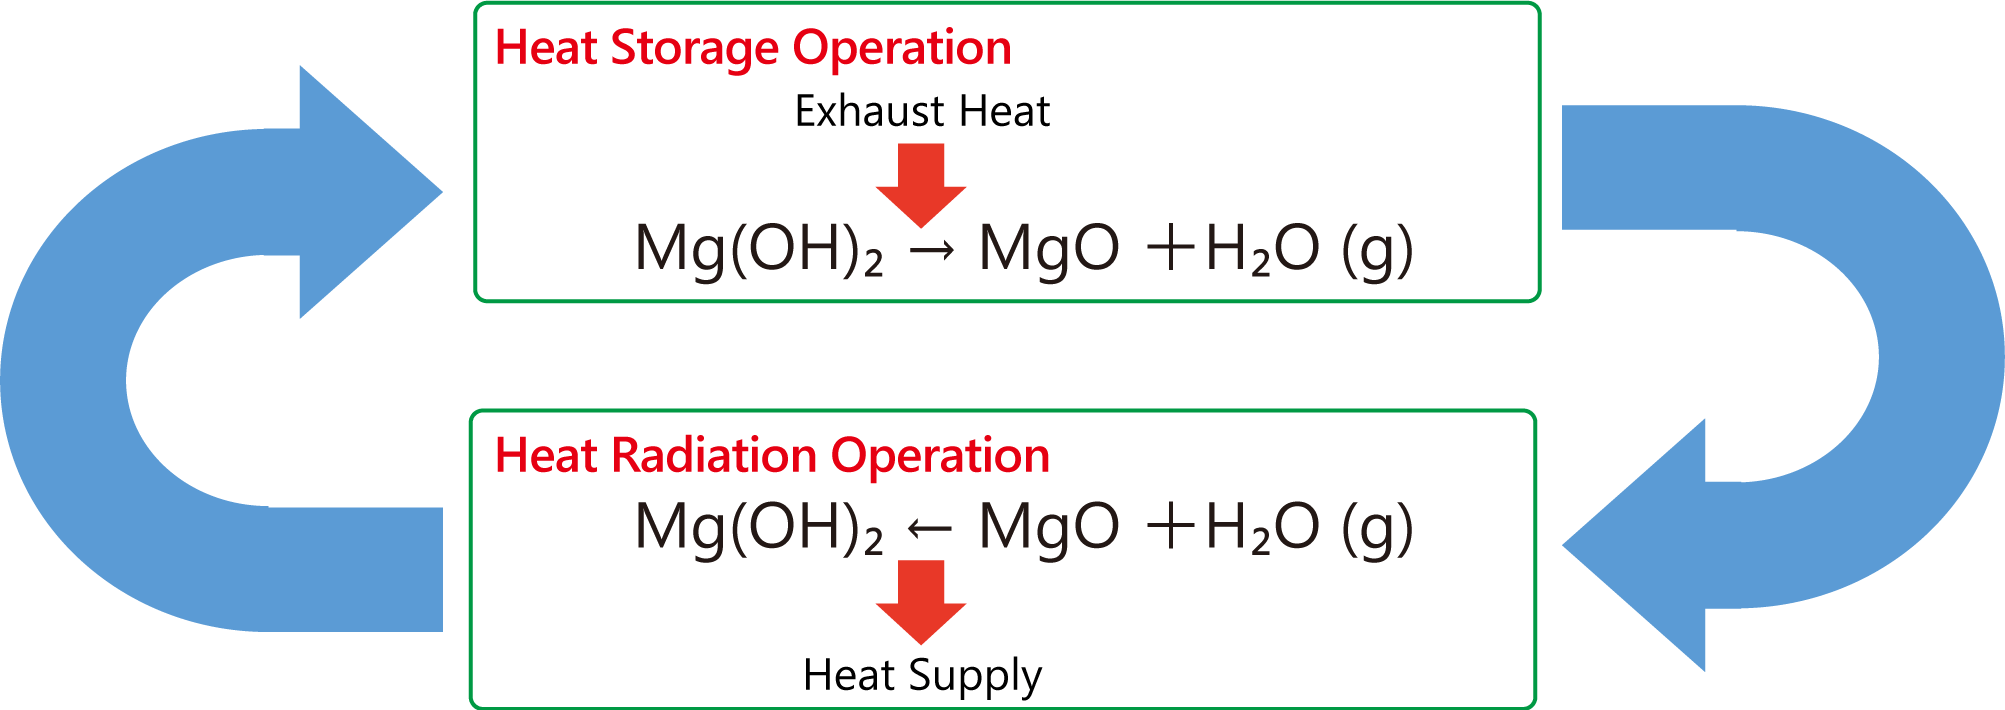 Principle of Heat Reserving and Radiating of CHARGEMAG®, magnesium hydroxide based thermal storage medium